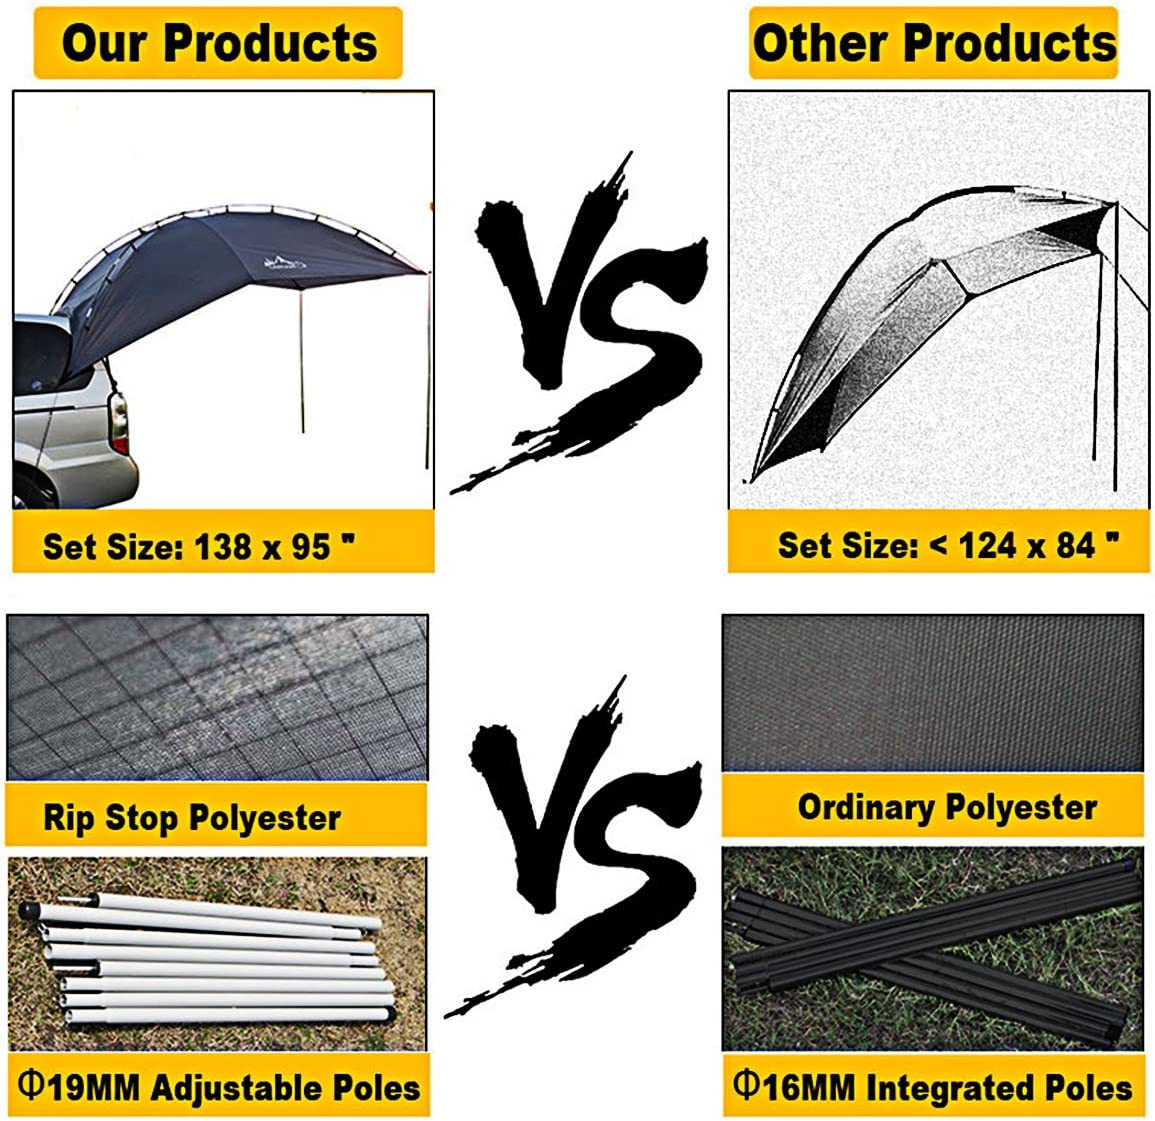 Blue Grey Trailer and Overlanding Light Weight Truck Canopy Durable Tear Resistant Tarp Car Tent for Sun-Shade and UV//Water Protection Versatility Teardrop Awning for SUV RVing Car Camping